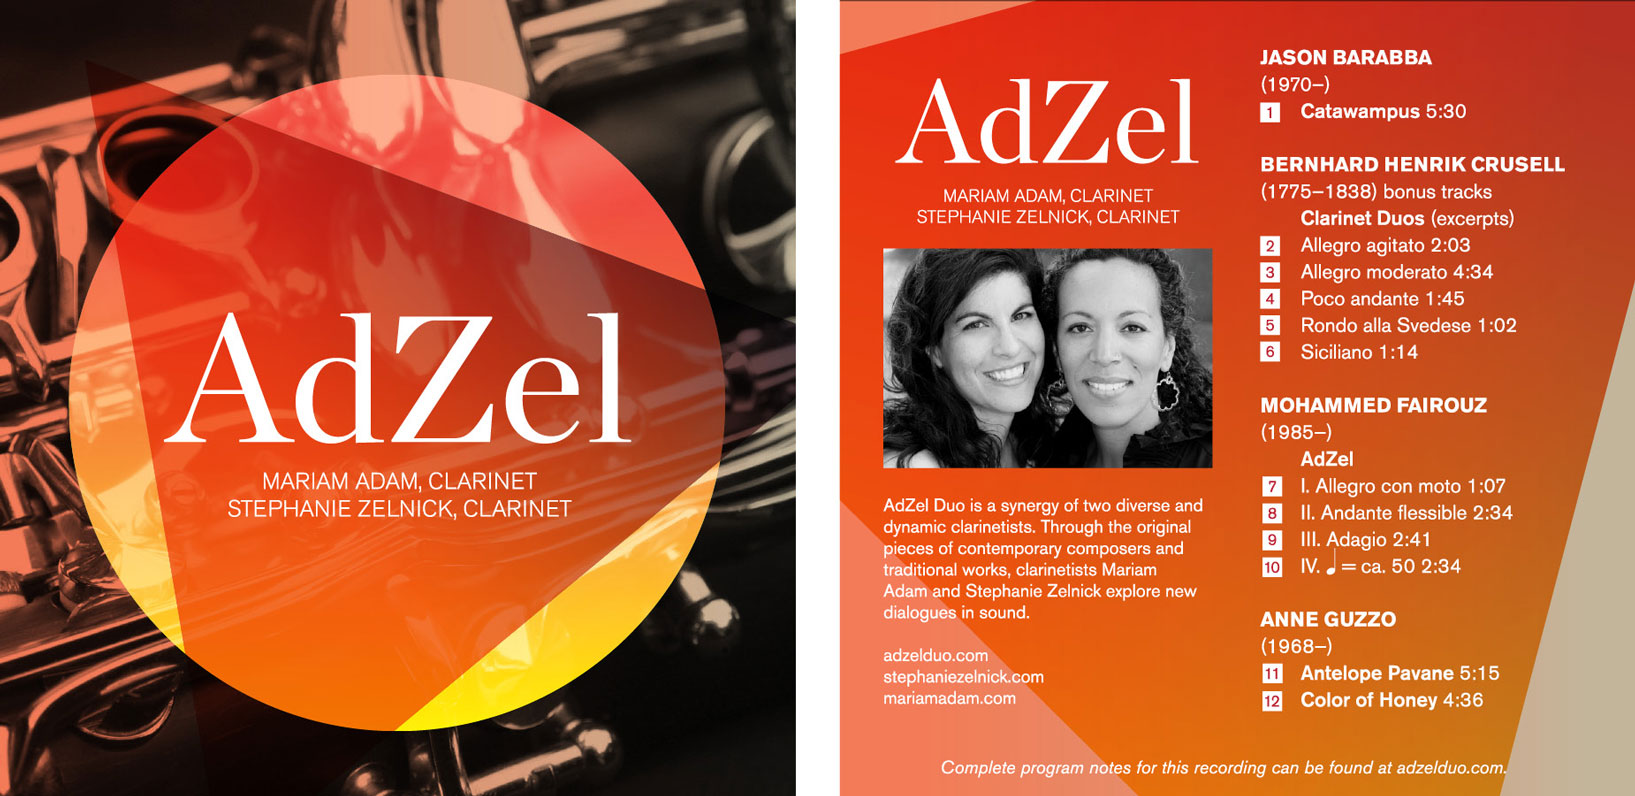 AdZel album cover